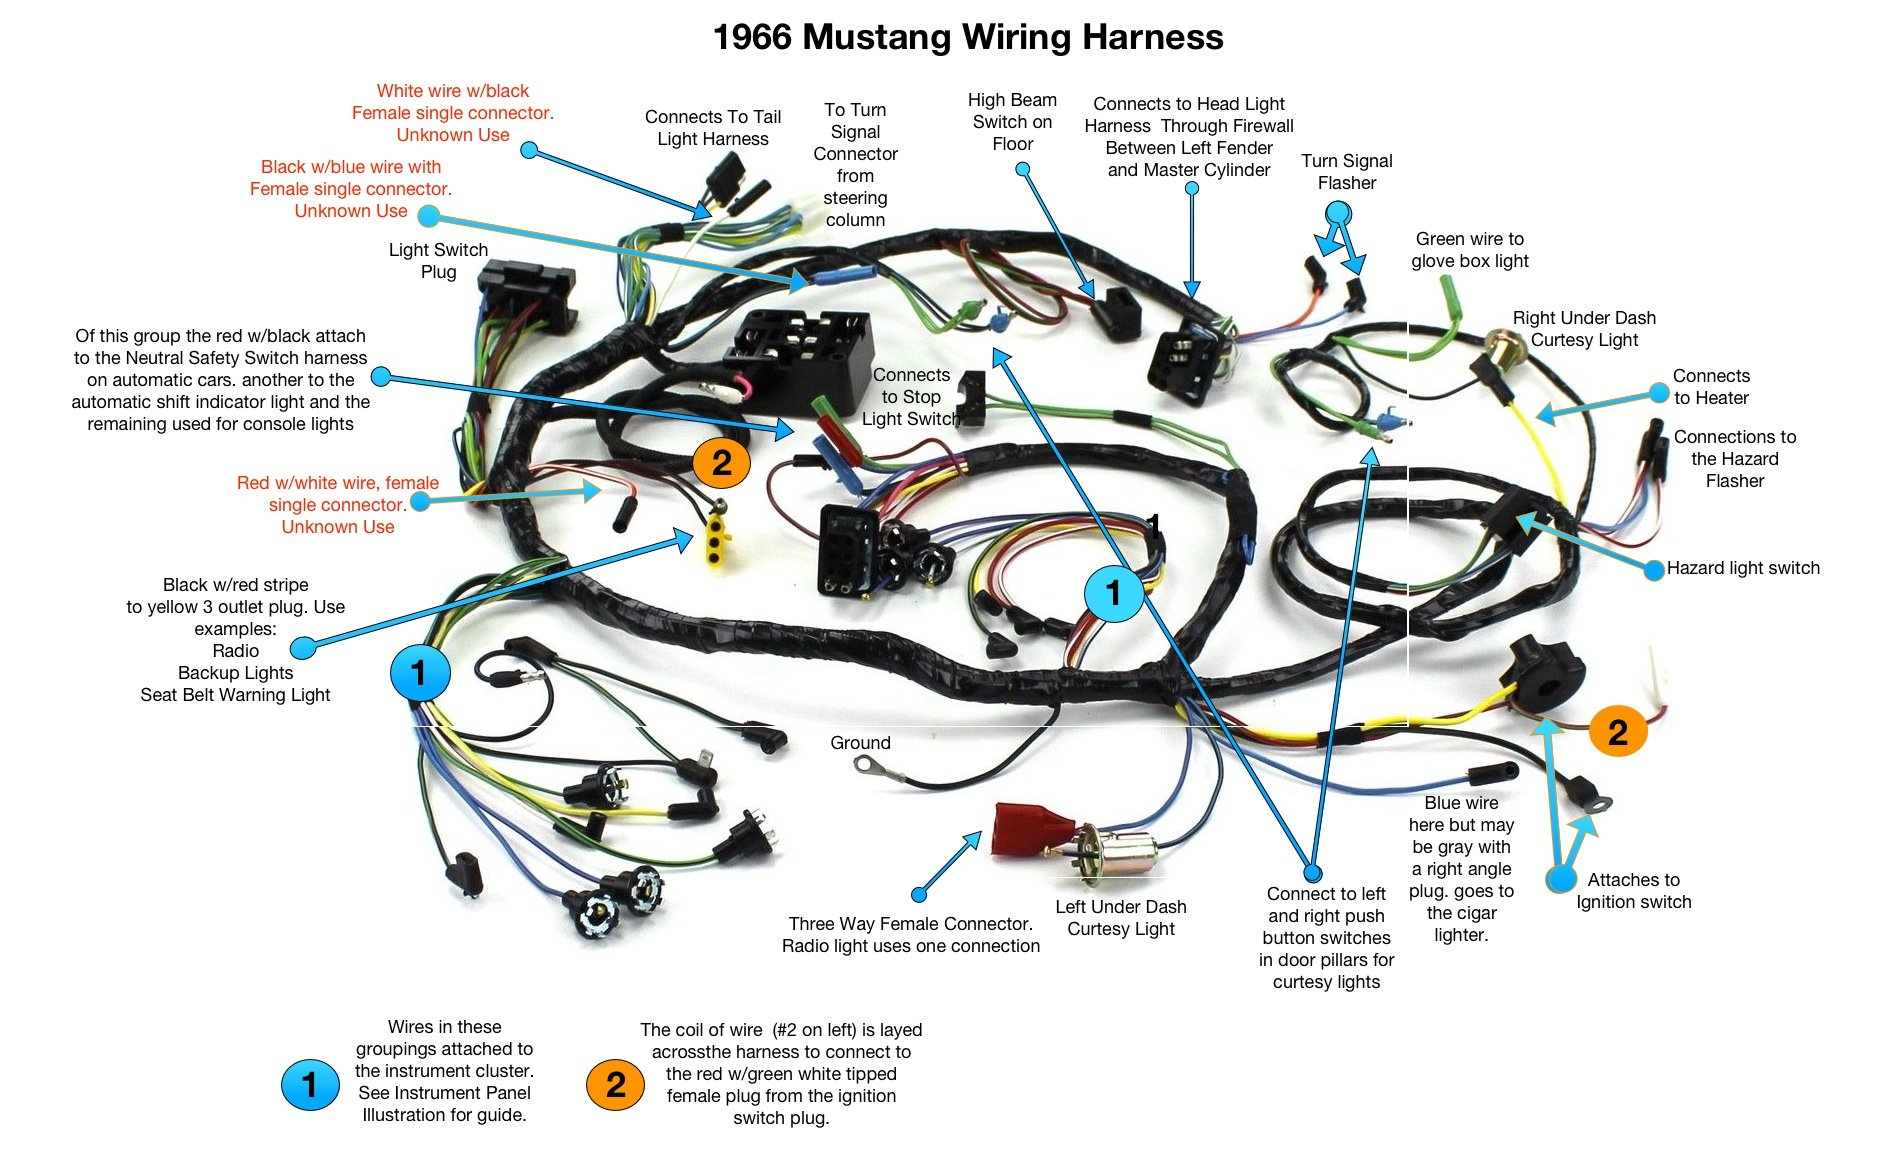 Mustang Wiring Harness Wiring Diagram Schemes Engine Wiring Harness 2003  Mustang Wiring Harness